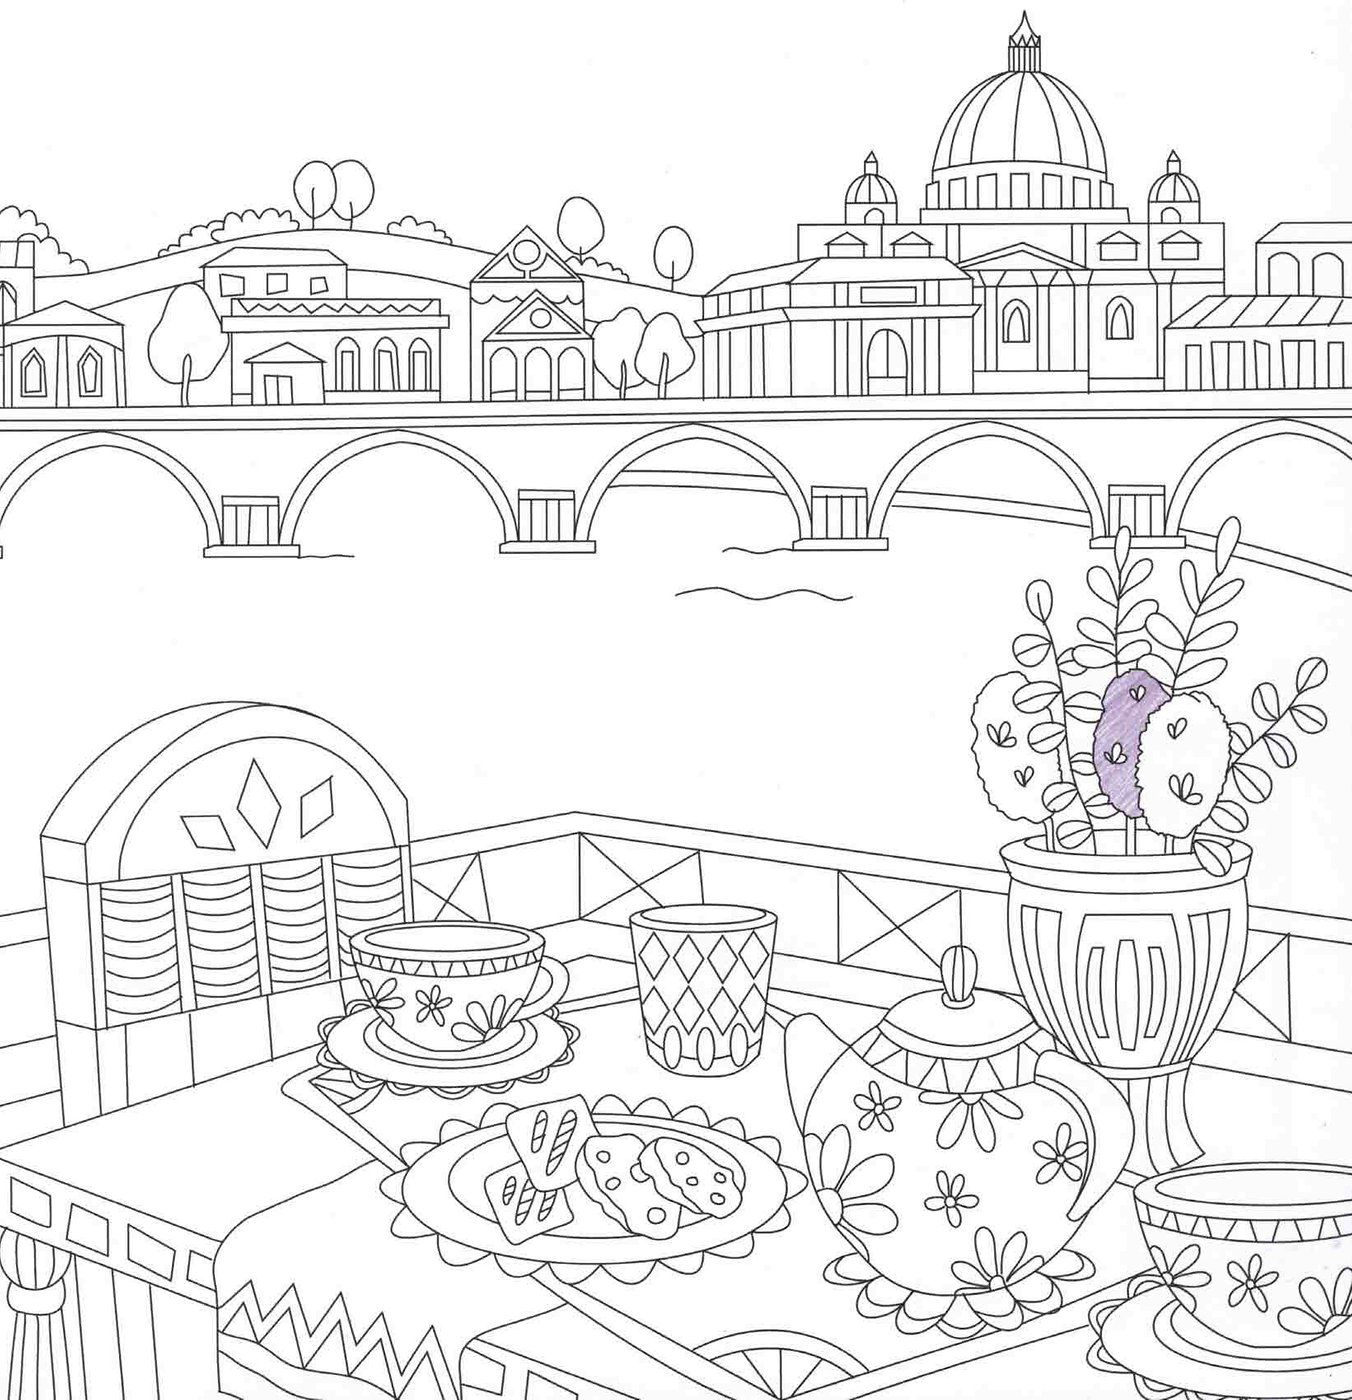 Italy Coloring Travel #coloringbook | Coloring Pages for Adults ...